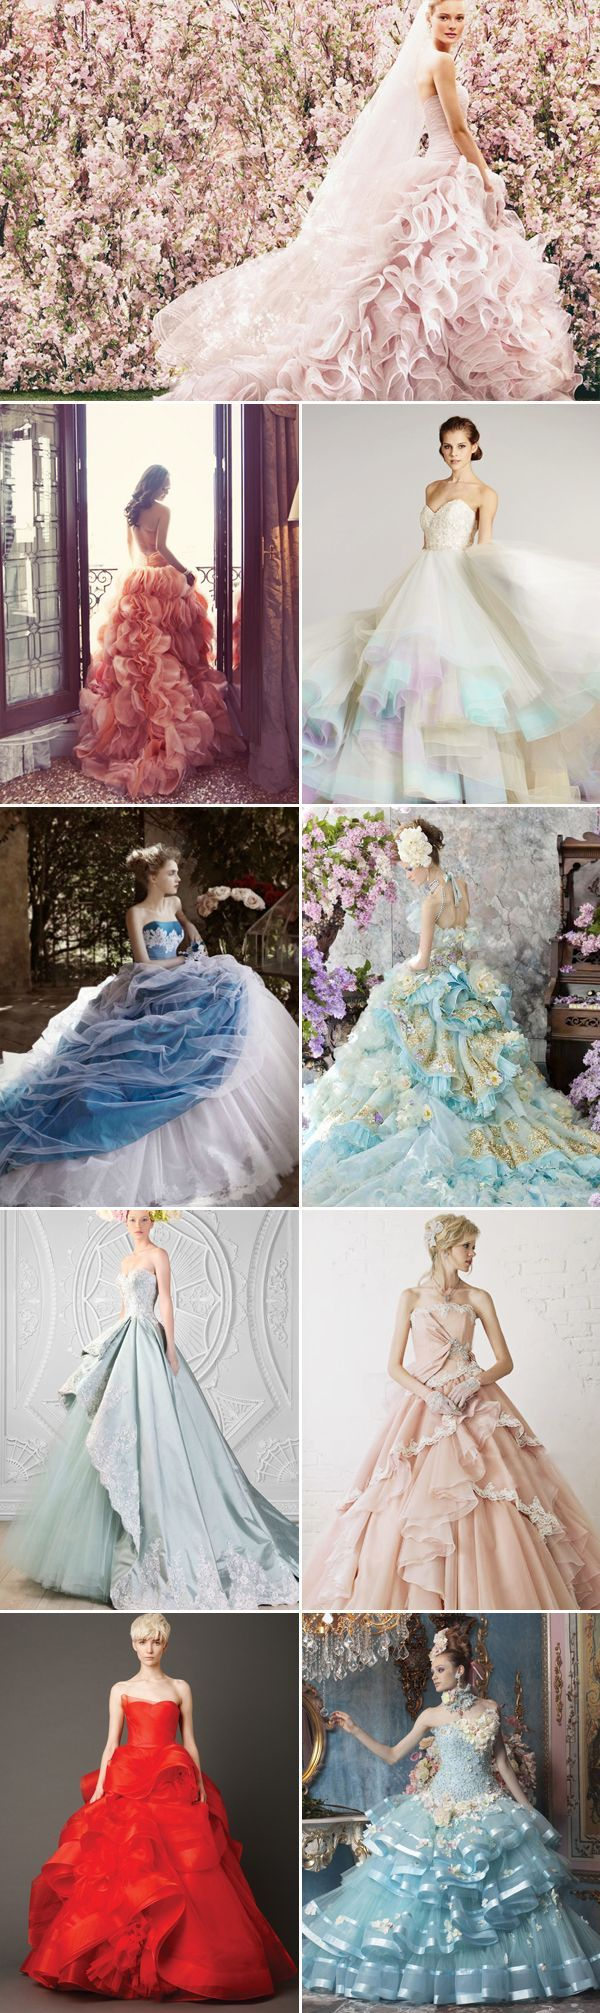 37 Princess Royal Ball Gowns with a touch of Glam! Colored Gowns